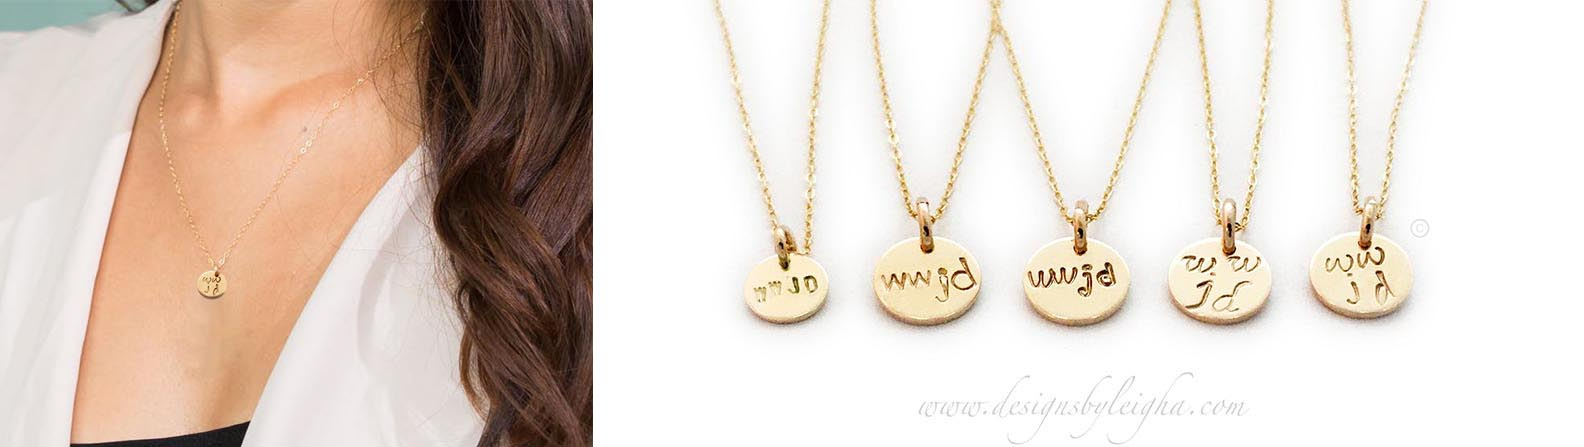 Gold WWJD Necklaces